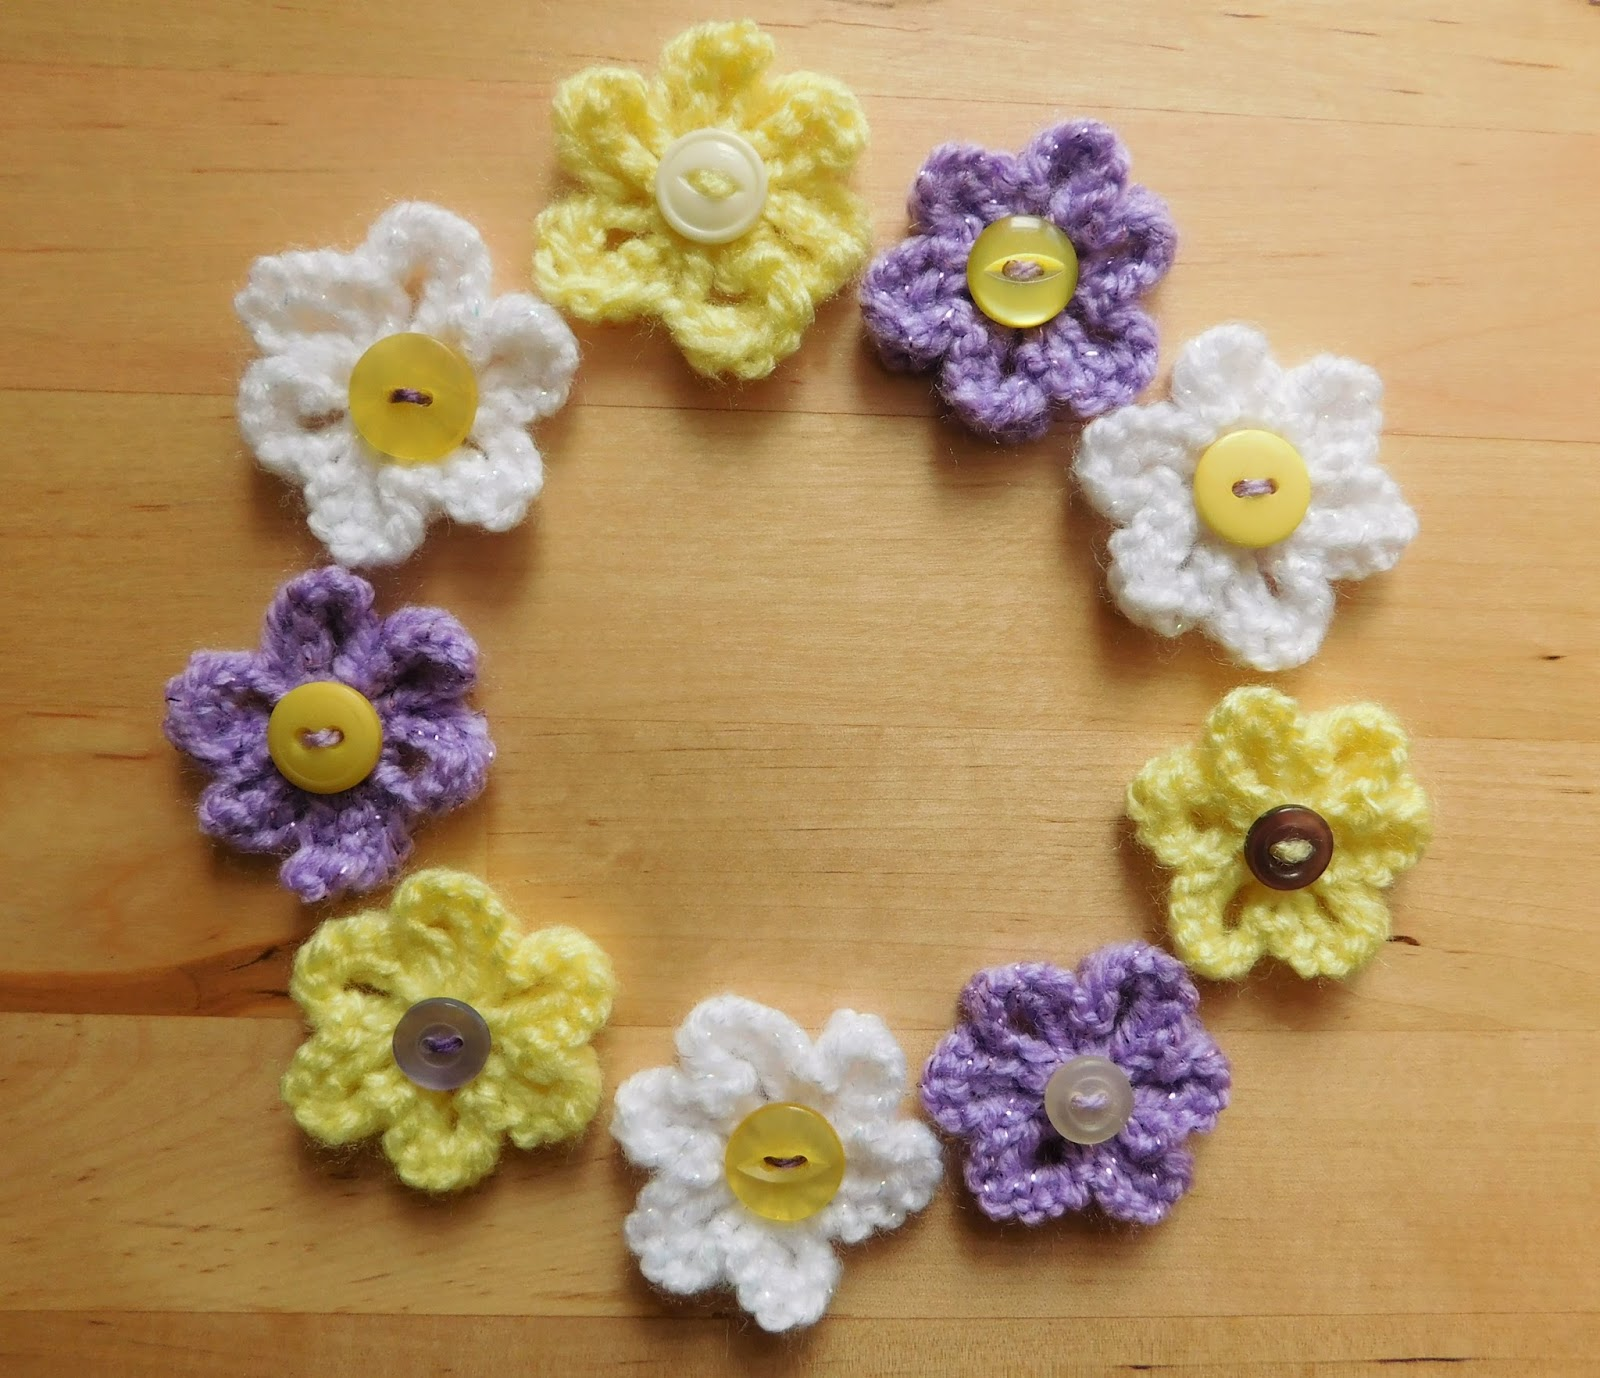 Mariannas lazy daisy days knitted summer flowers knitted summer flowers bankloansurffo Images